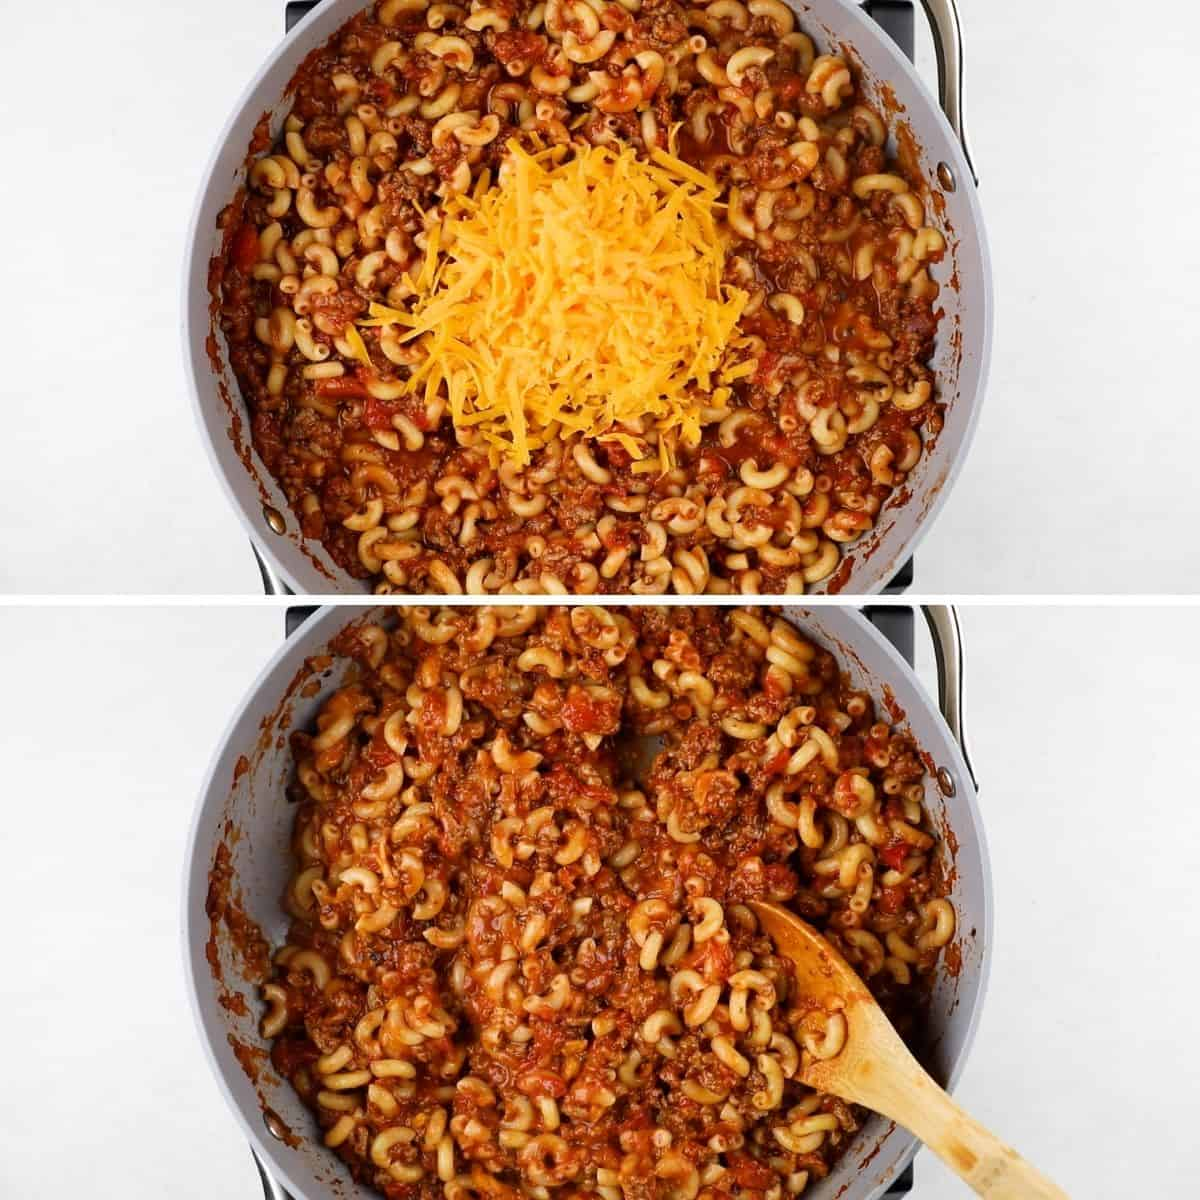 Process photos of adding greated cheddar cheese to goulash and mixing.